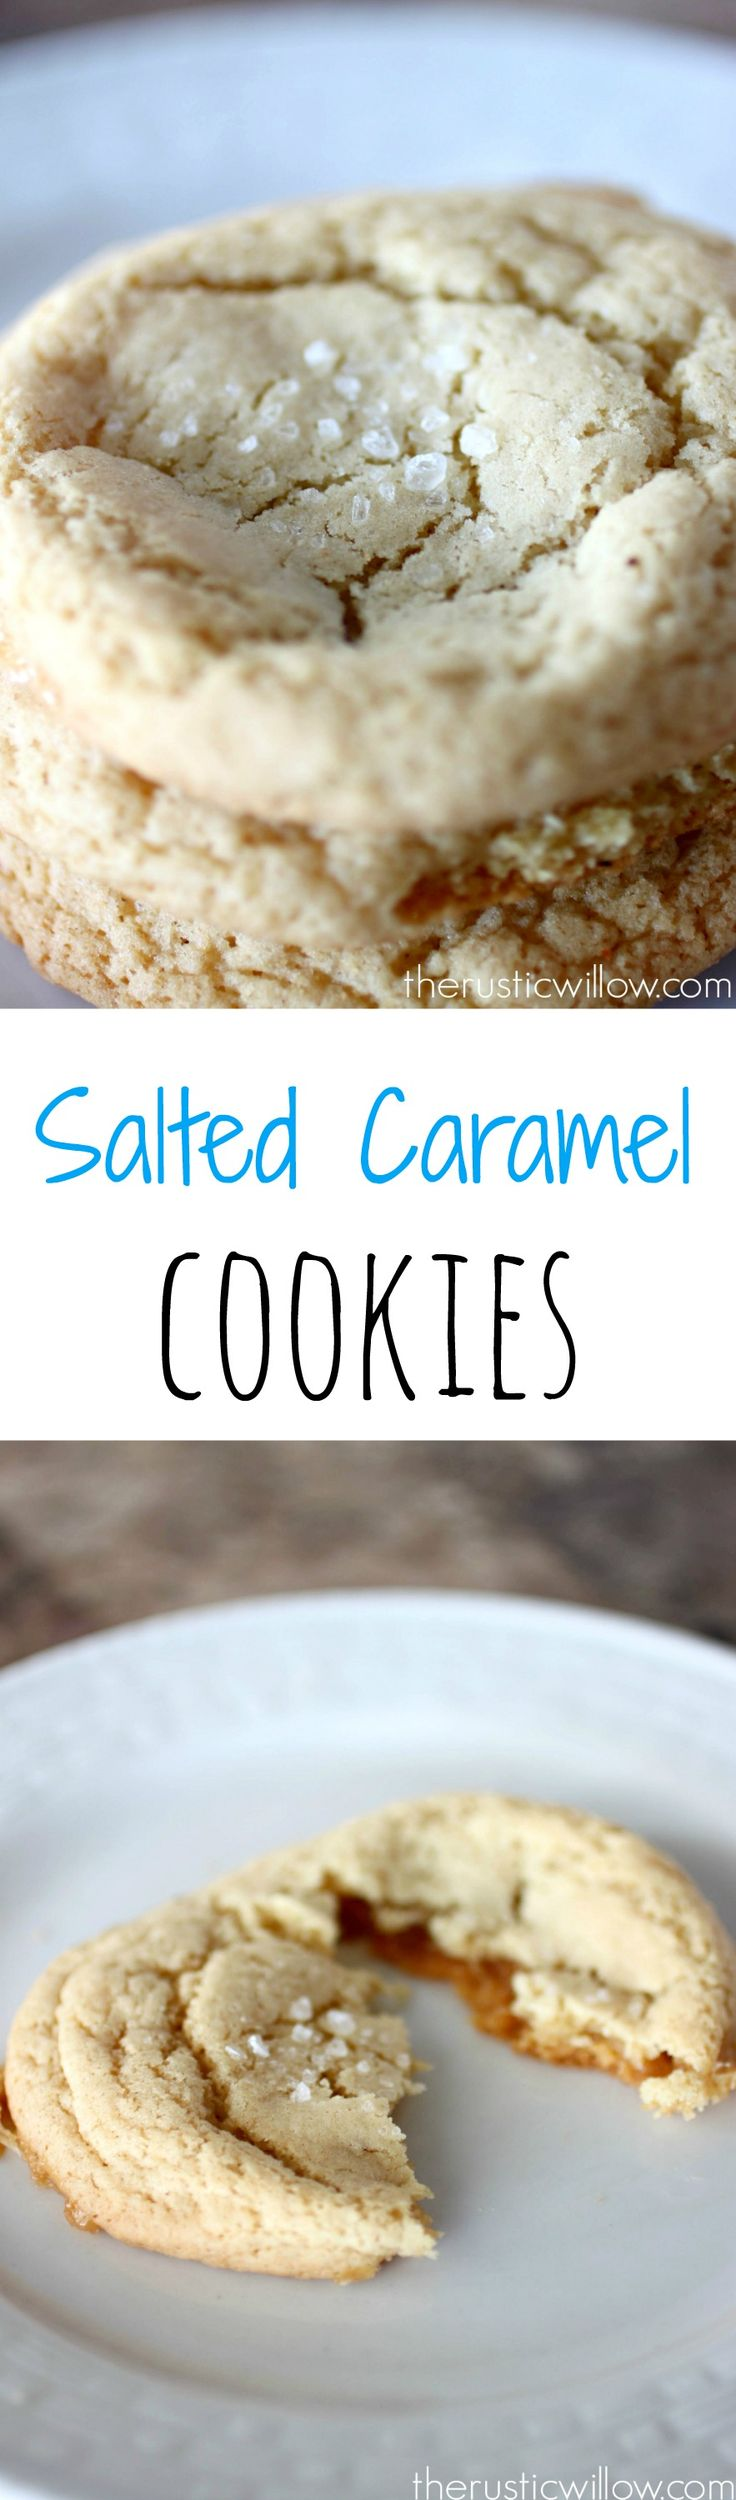 Delicious cookies stuffed with caramel and topped with hearty sea salt | therusticwillow.com